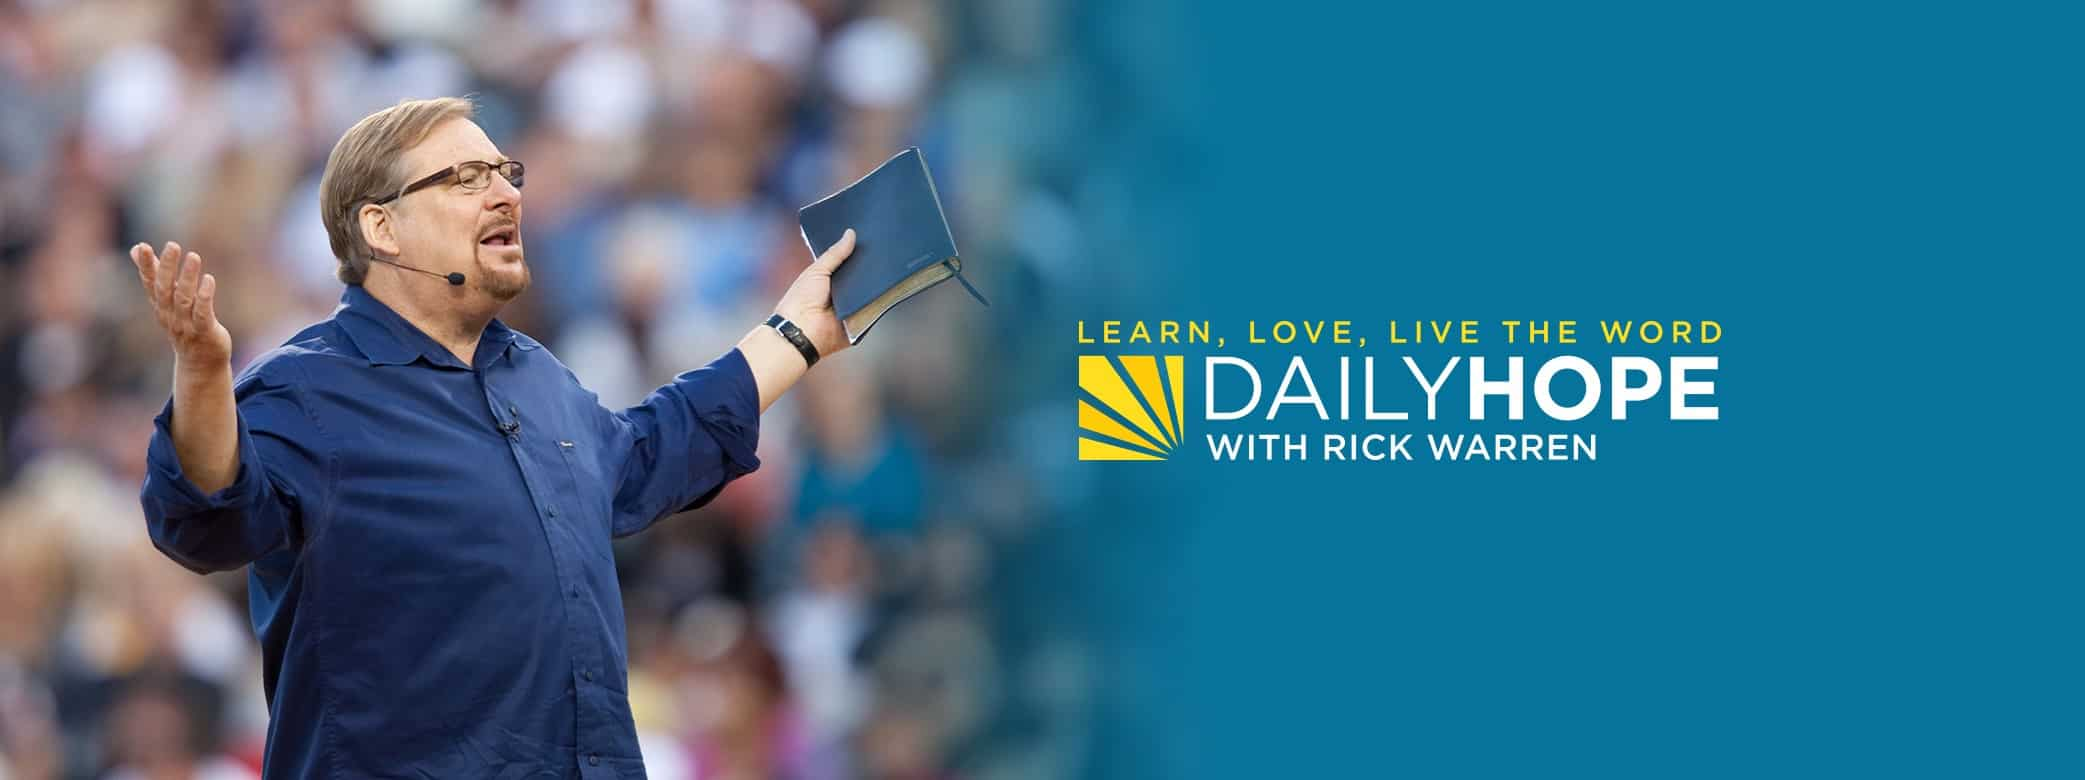 Daily Hope with Rick Warren Devotional 31 March 2021